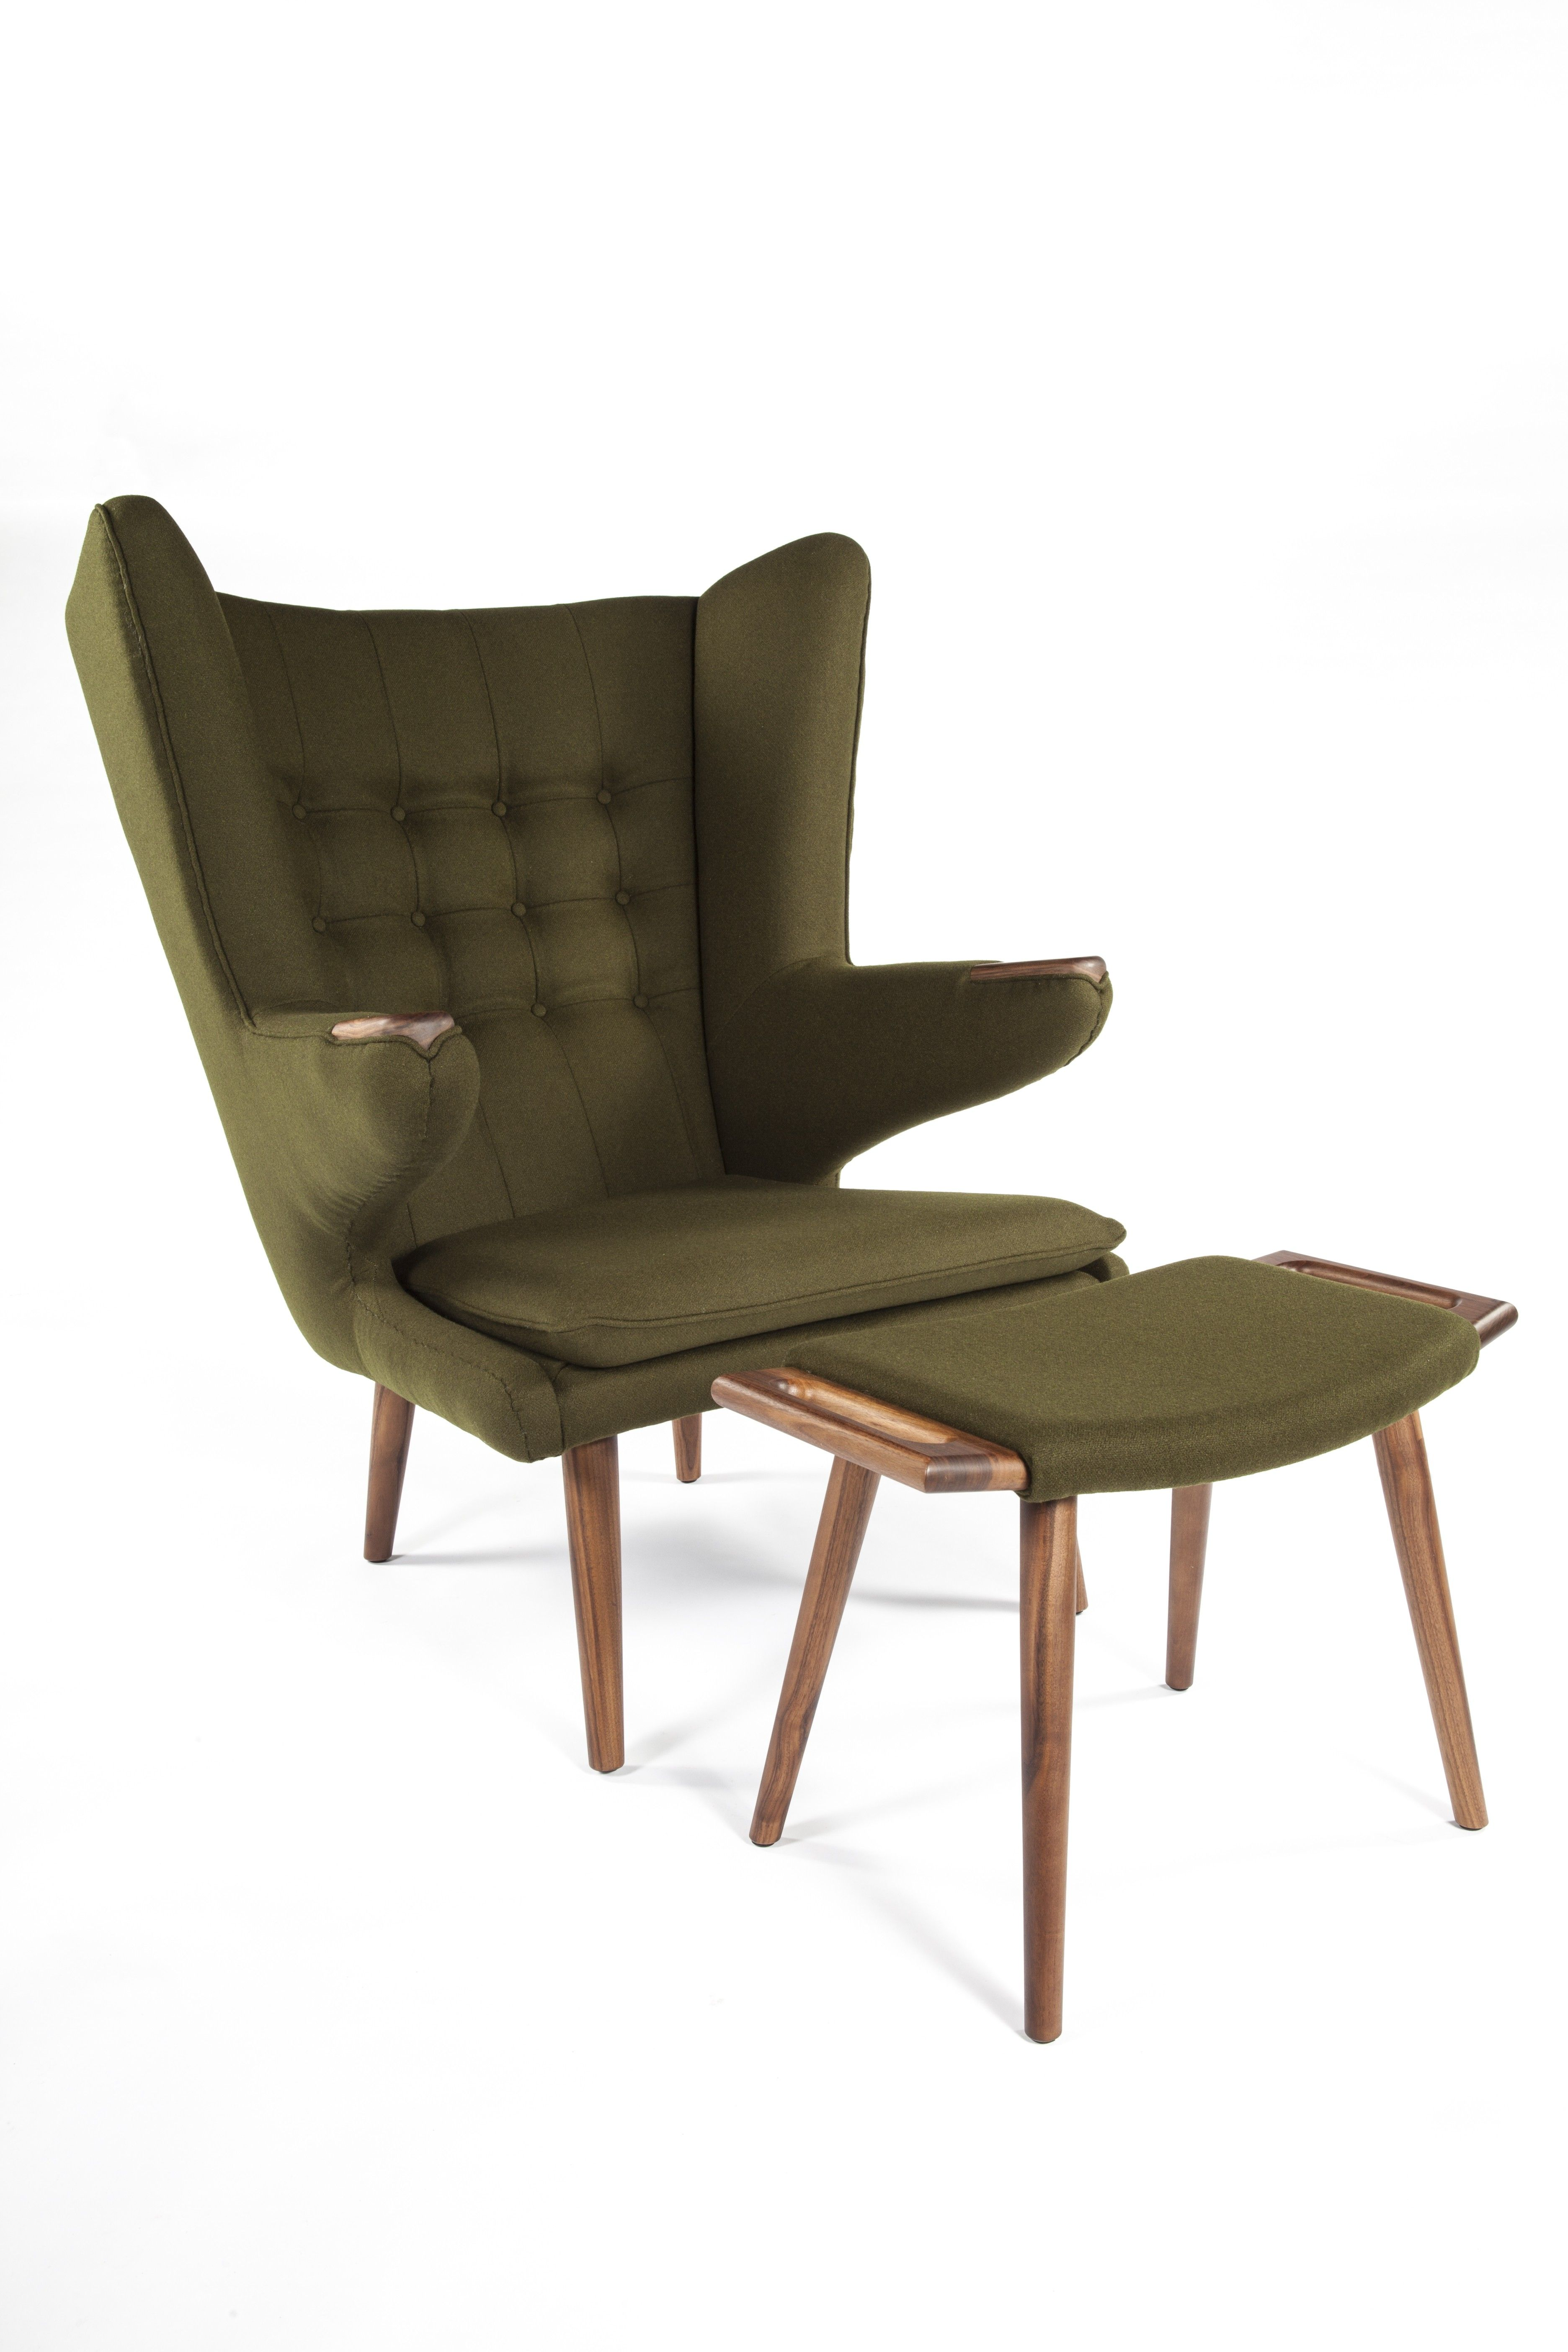 Pp19 Papa Bear Chair And Ottoman Green Gret Free Shipping With A Purchase Of This High Quality Reproduction